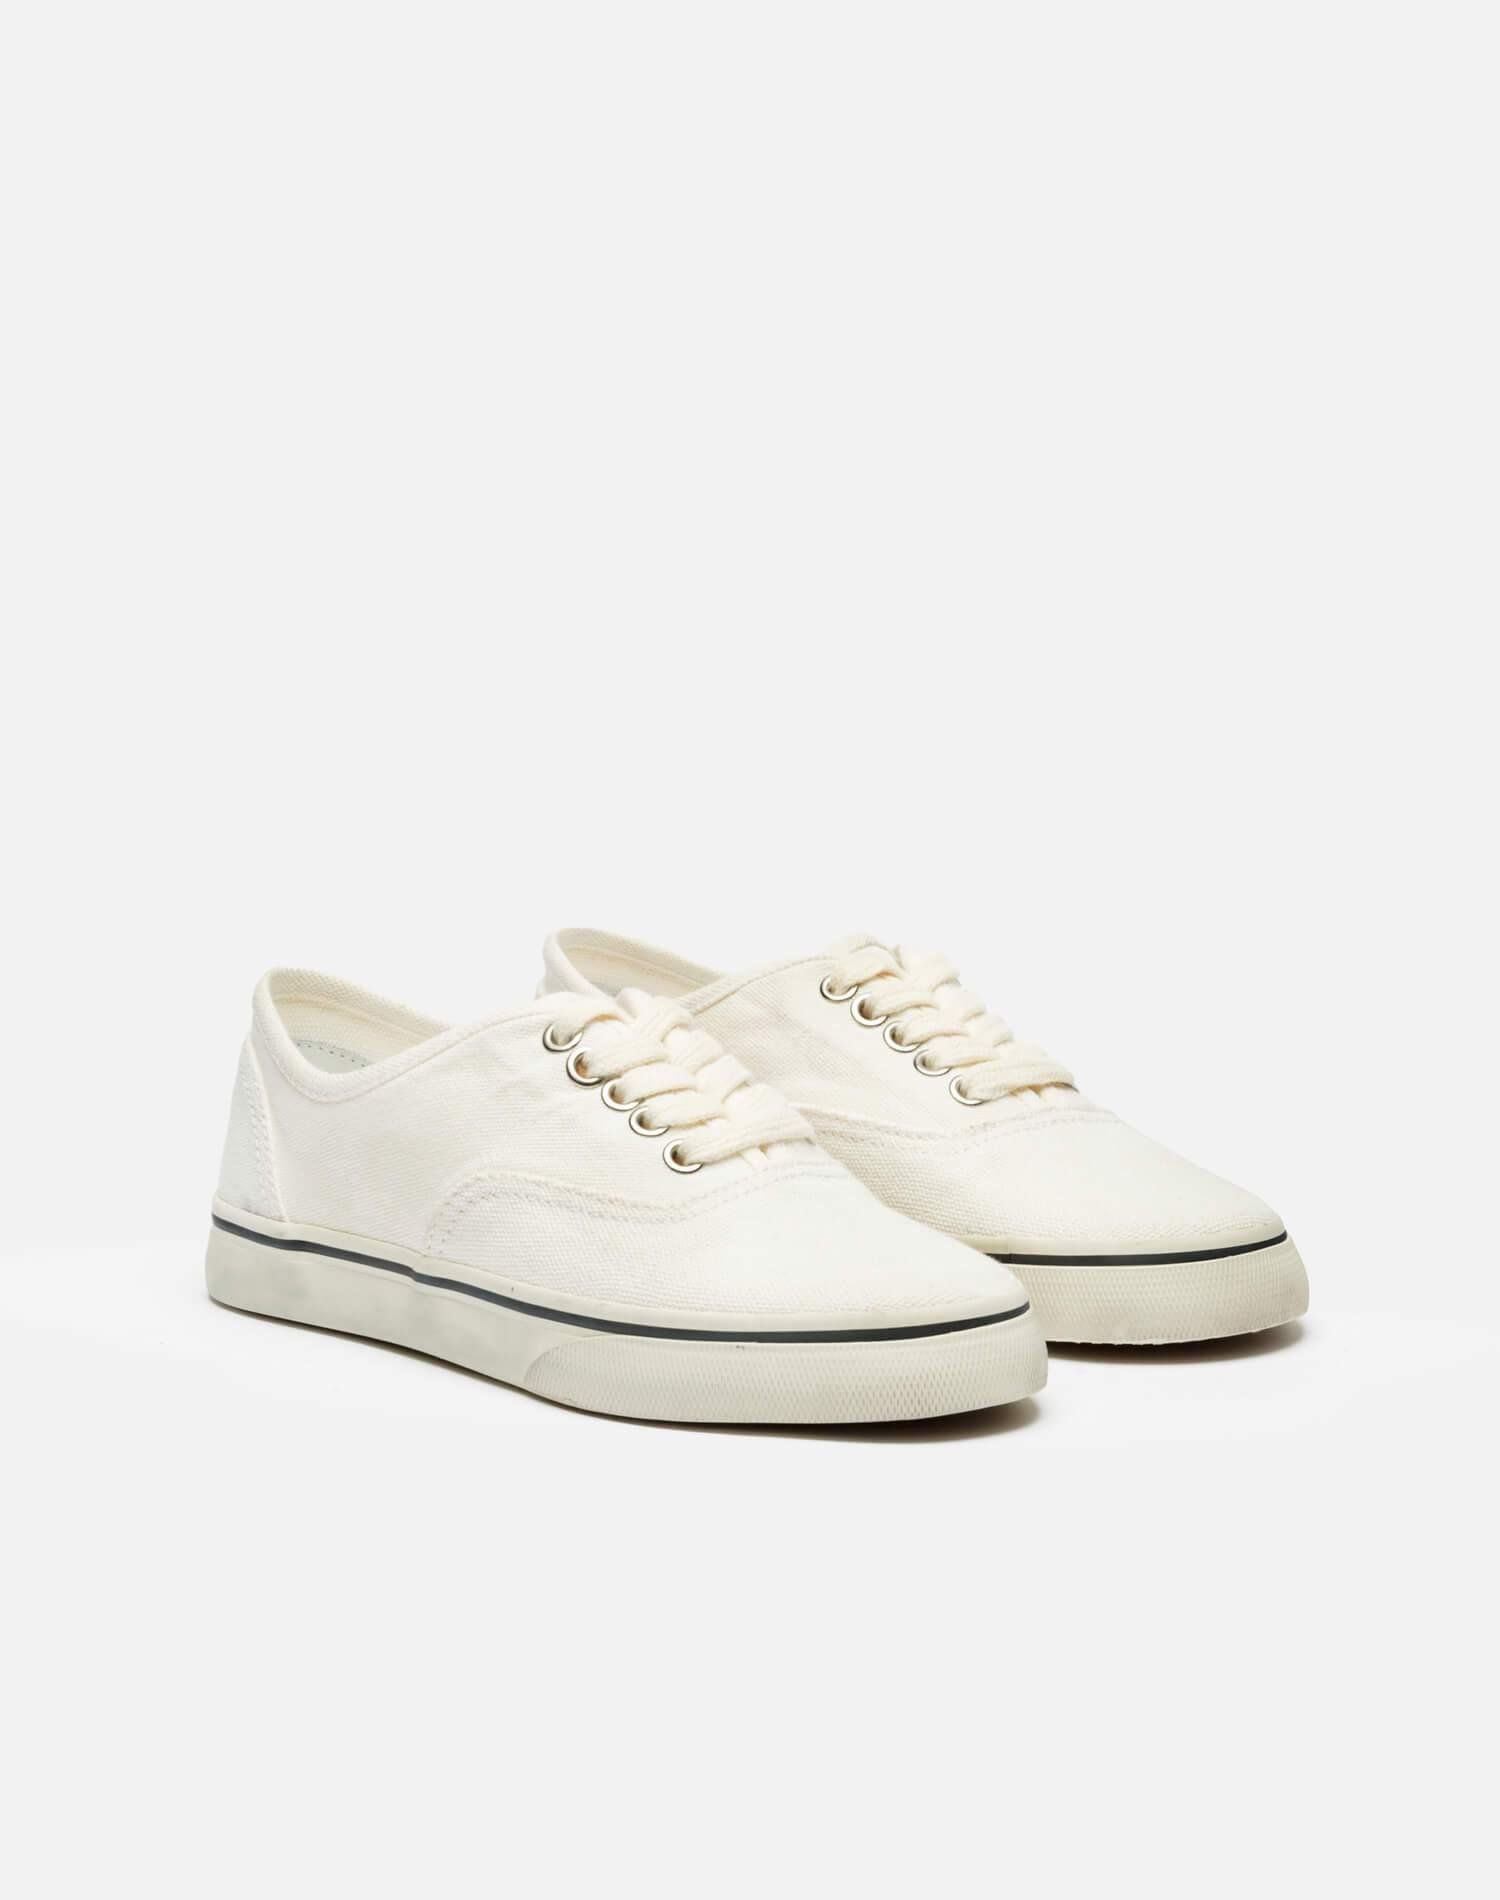 70s Low Top Skate - Washed Off White 1